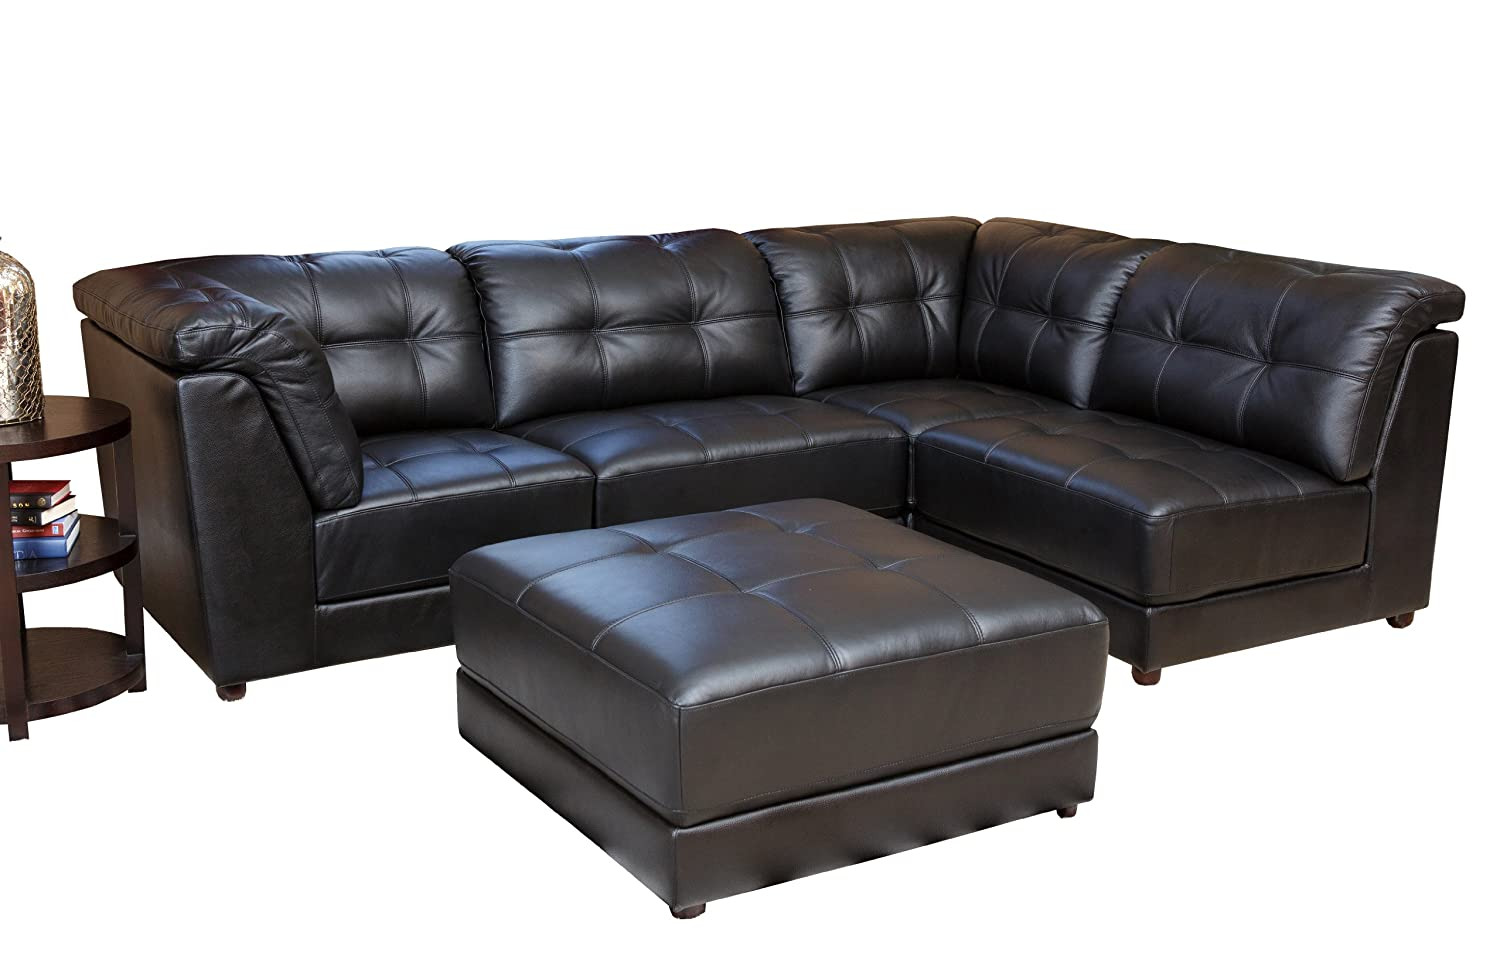 Abbyson Living Donovan 5-Piece Modular Leather Sectional Sofa - Black